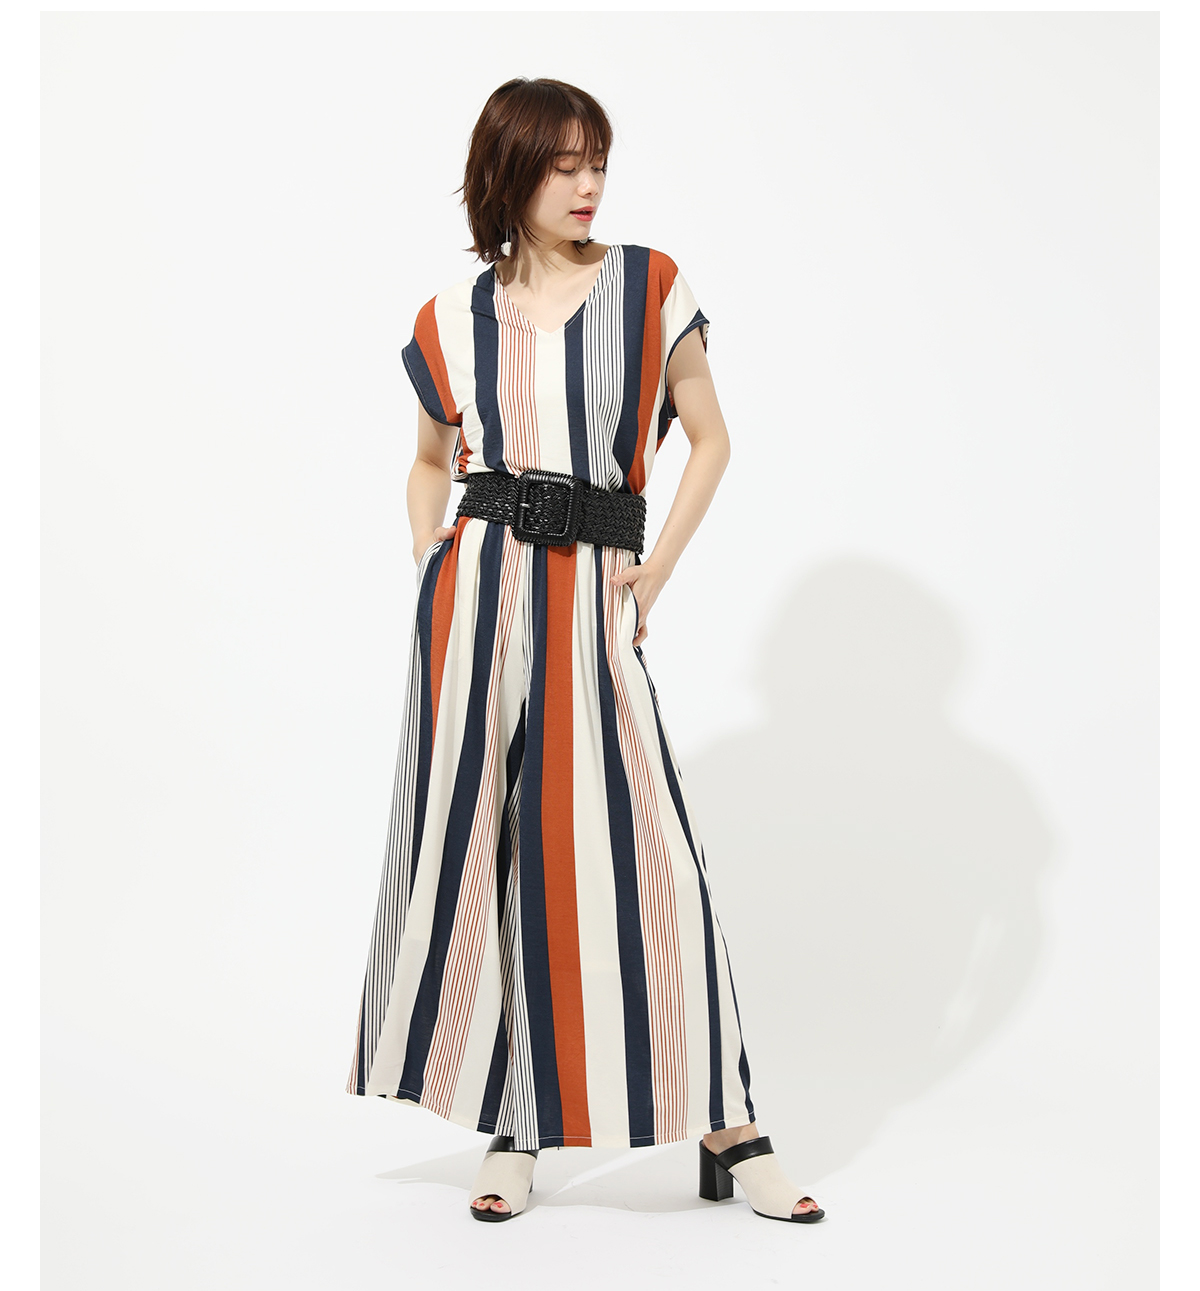 035b18ade891 GW SALE LIMITED PRICE|特集コンテンツ|AZUL BY MOUSSY(アズールバイマウジー)公式通販サイト